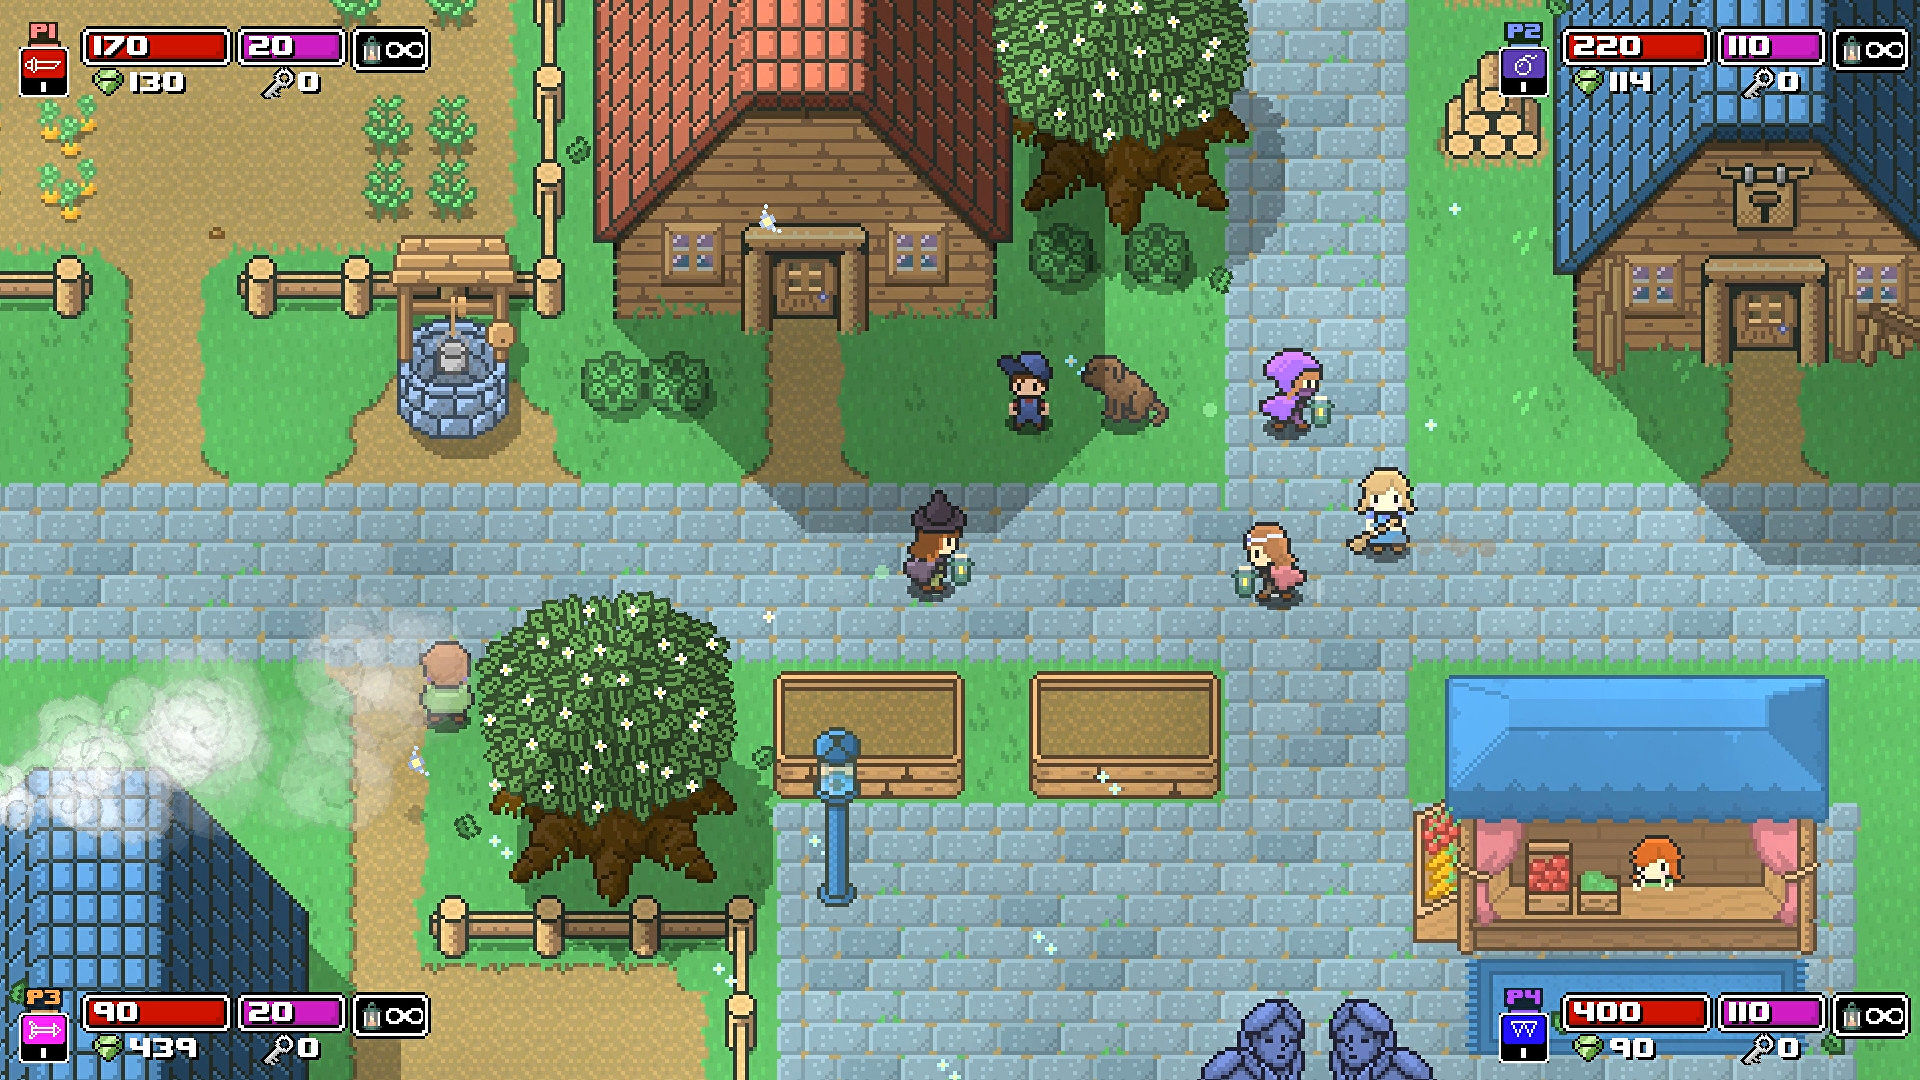 Co-op Zelda-like Rogue Heroes is out now